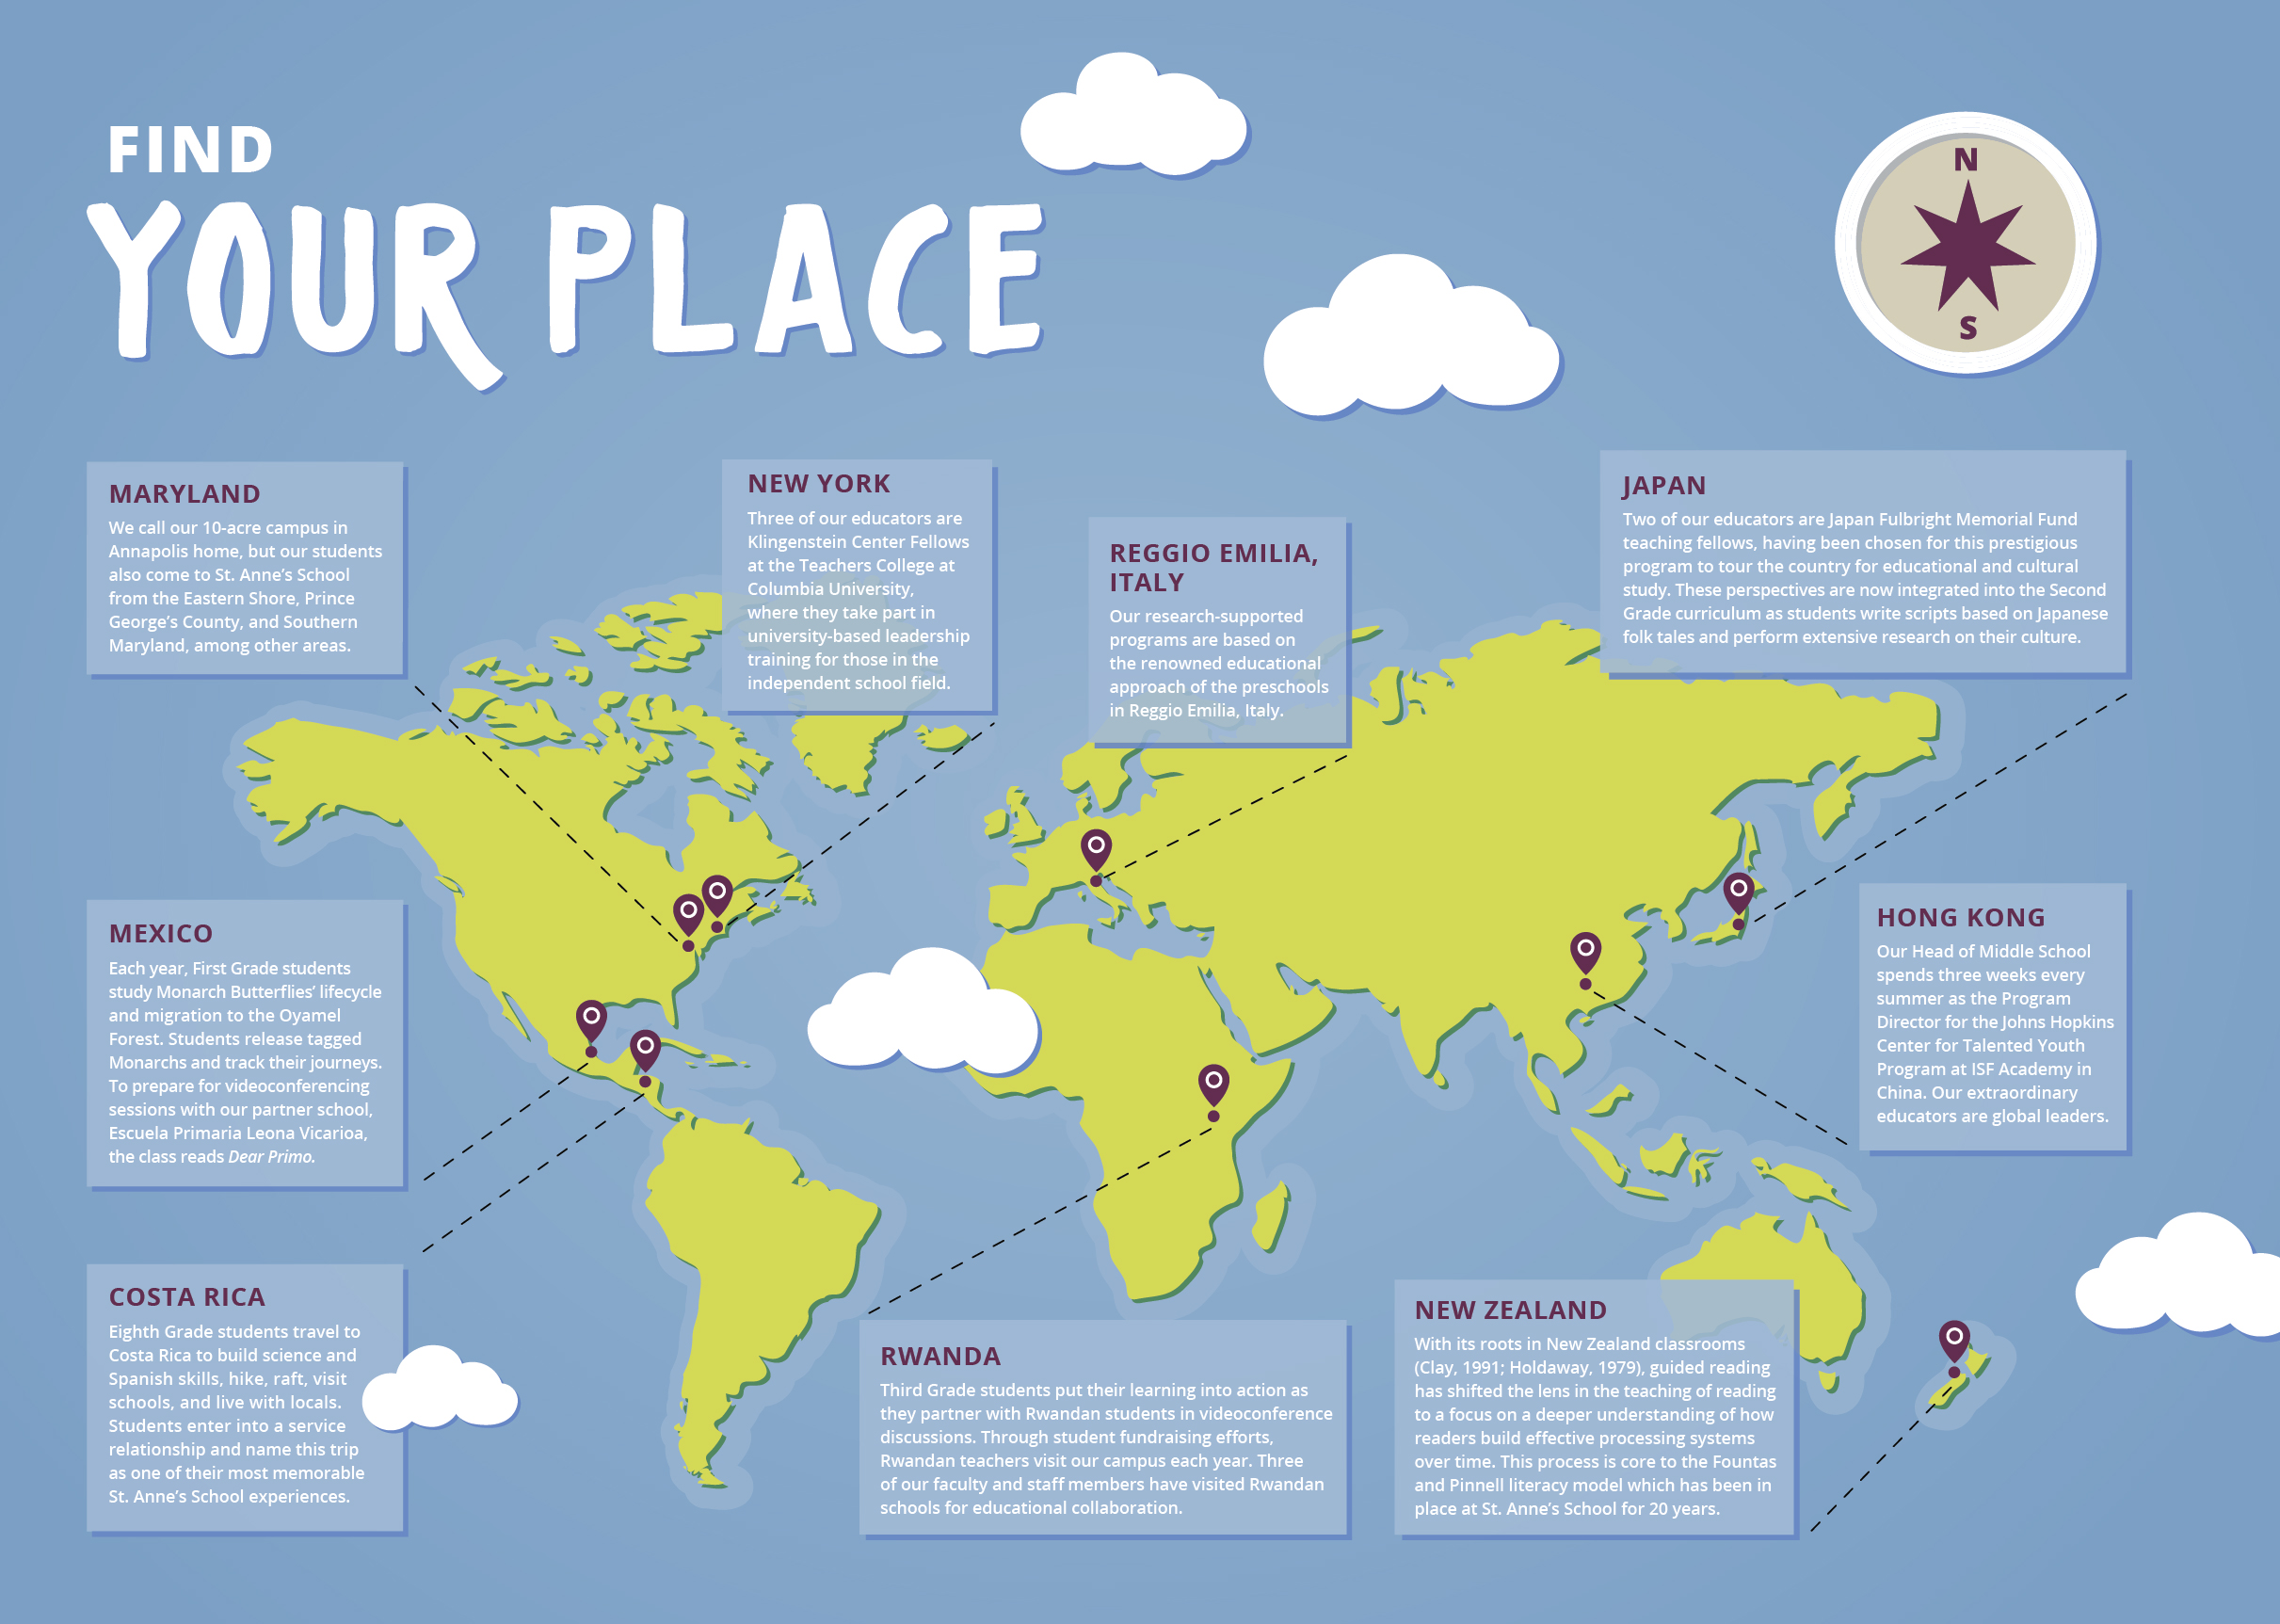 Global map of St. Anne's School involvement